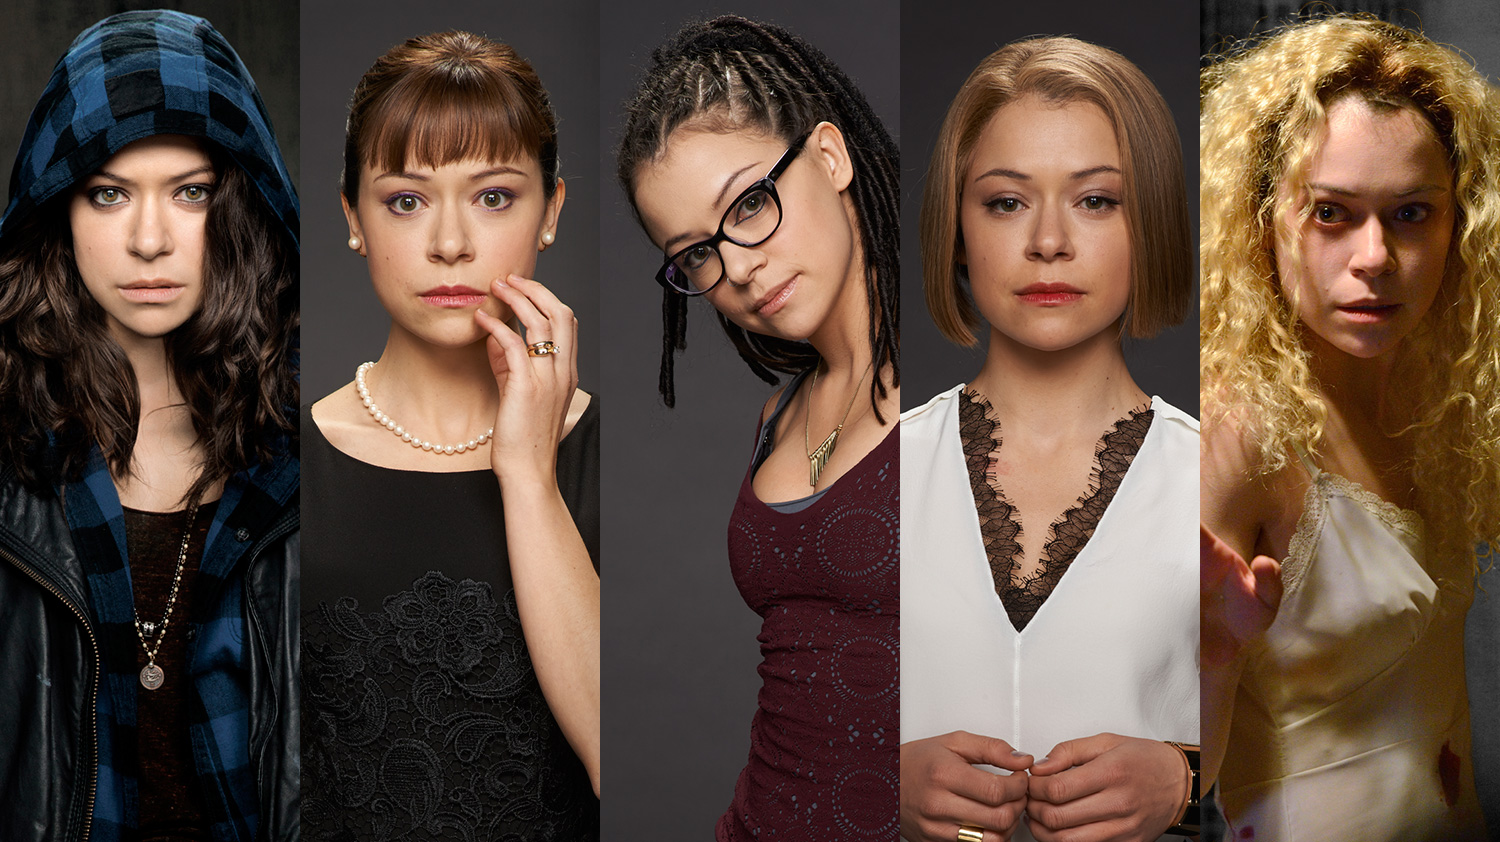 Orphan Black: Back to the Beginning – 3 Takes on the Season 4 Premiere